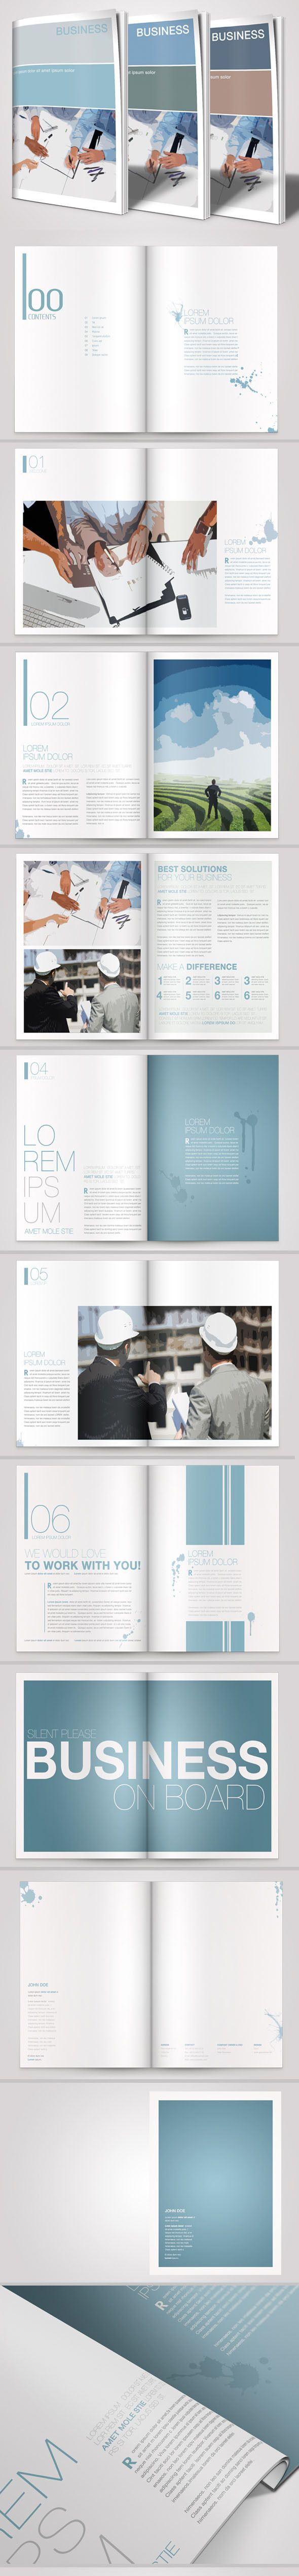 A4 Business Brochure Vol. 01 | Designer: Danijel Mokic